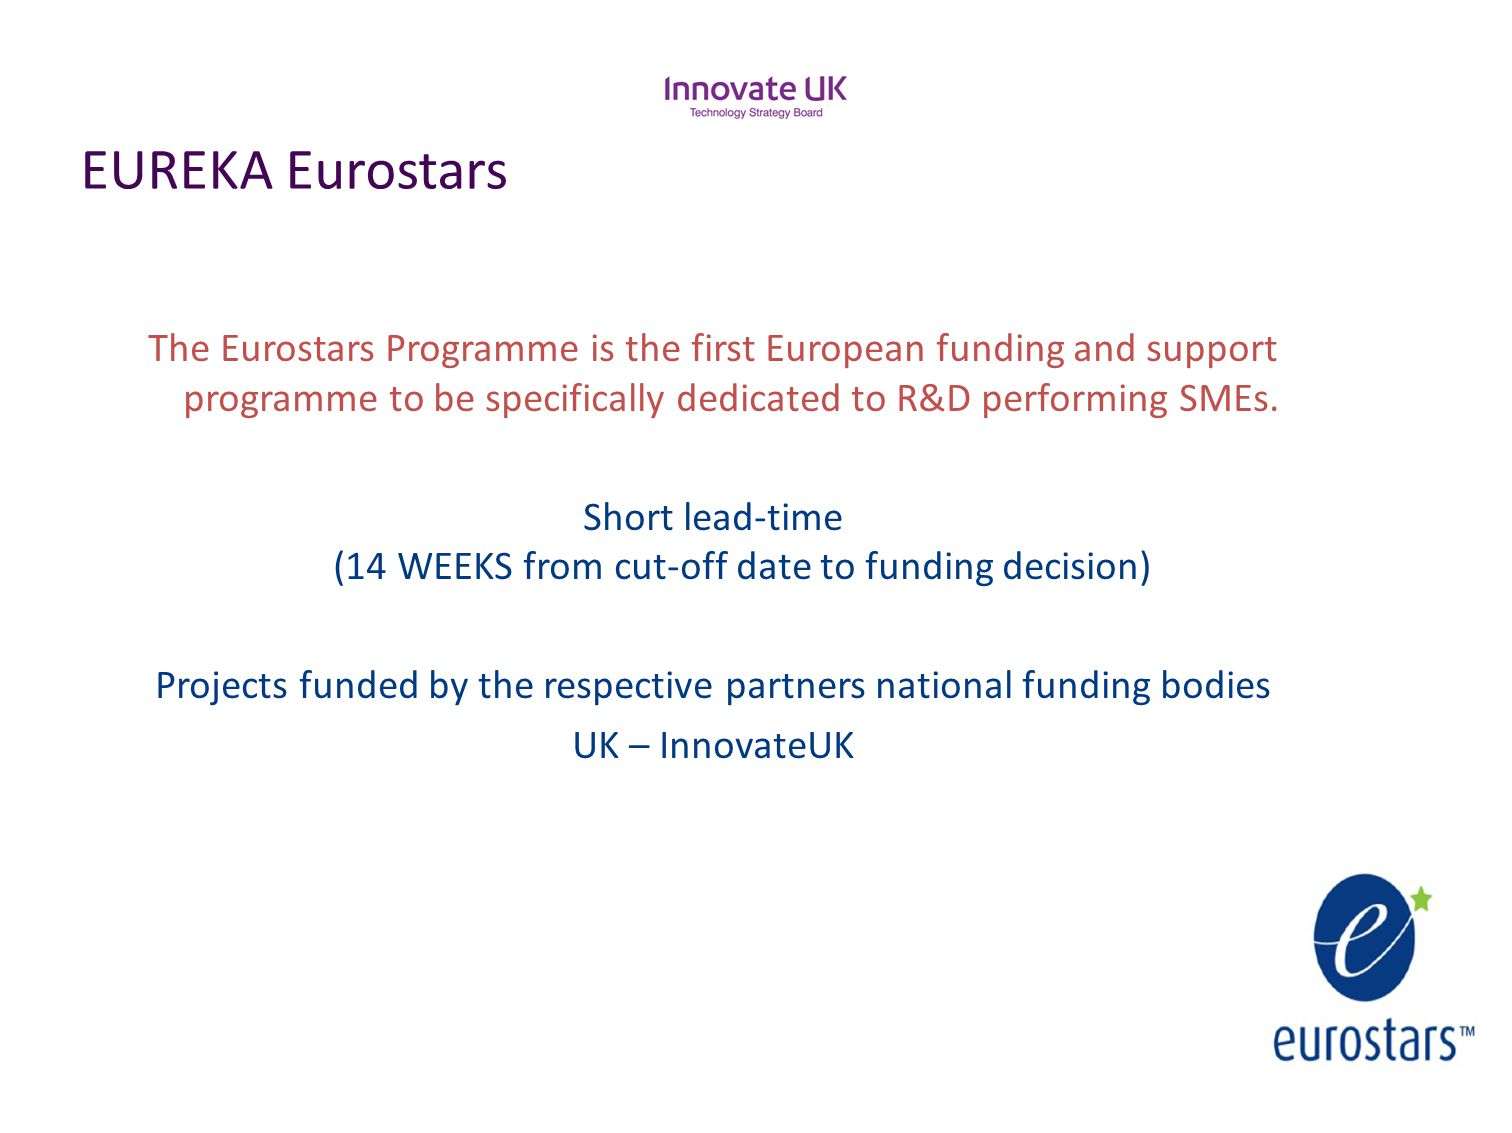 EUREKA Eurostars The Eurostars Programme is the first European funding and support programme to be specifically dedicated to R&D performing SMEs.